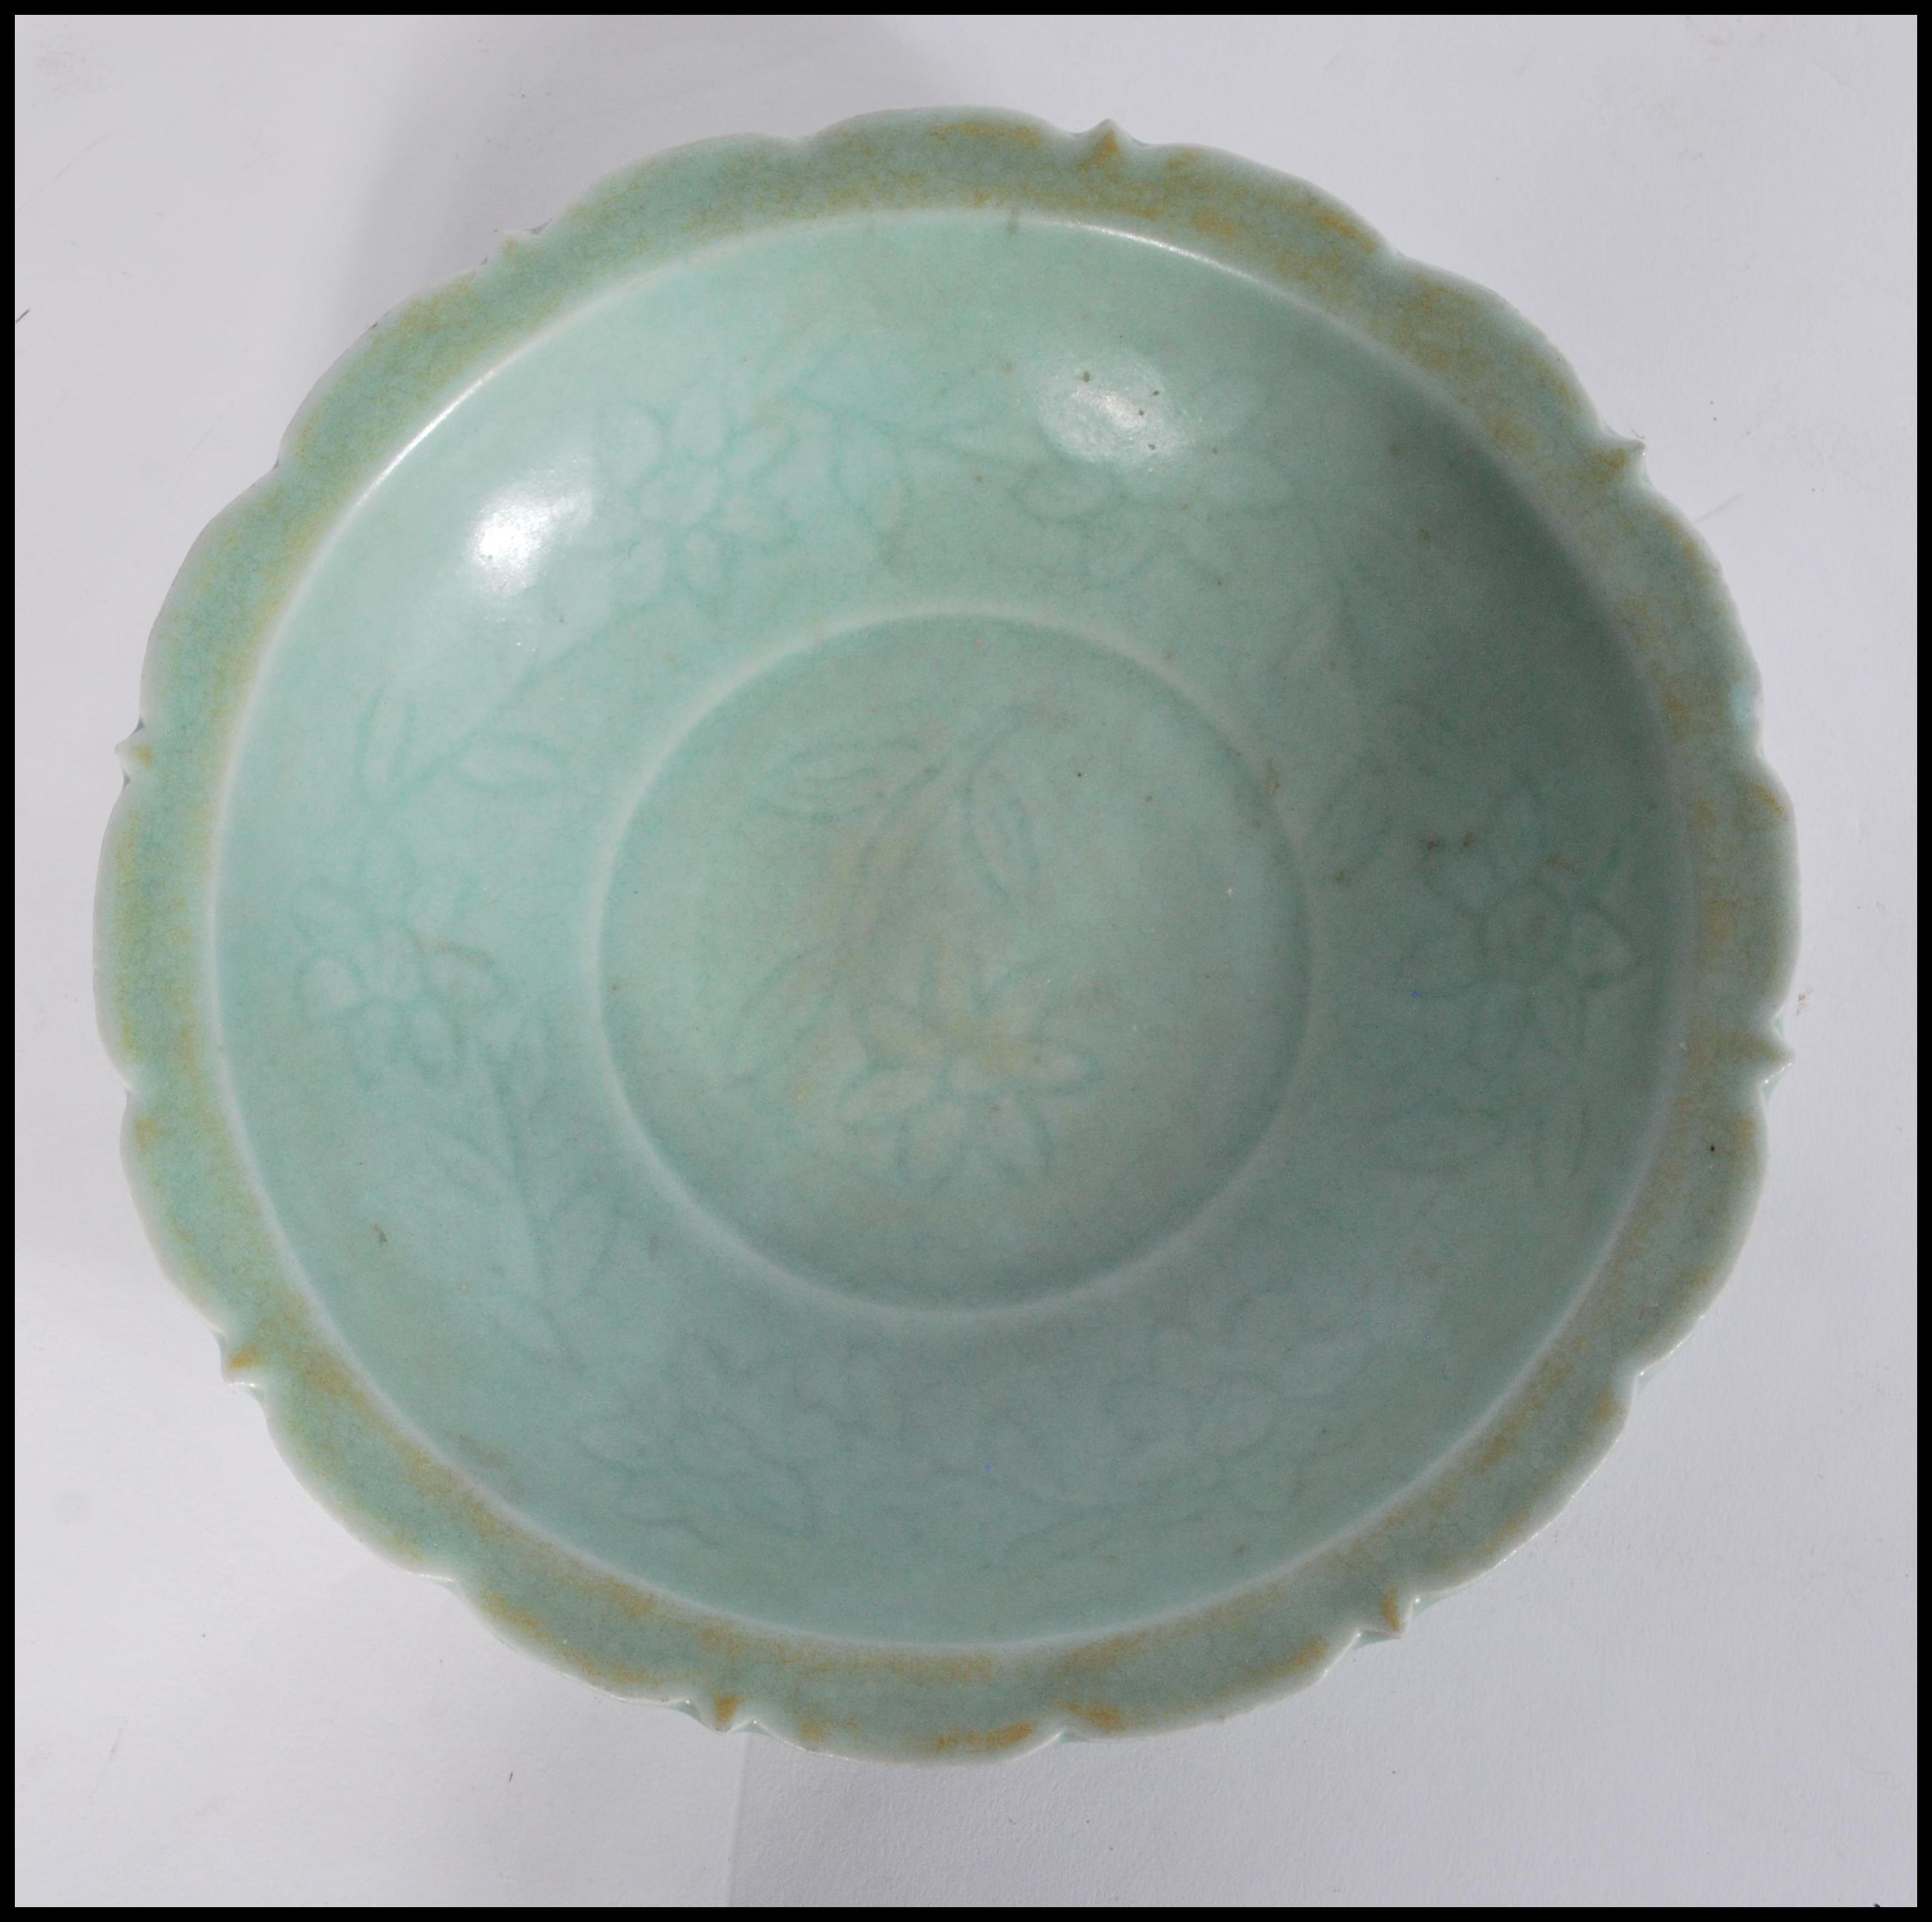 Lot 49 - A Chinese celadon glaze bowl of scalloped form having floral motifs and decoration.Measures 5cm-